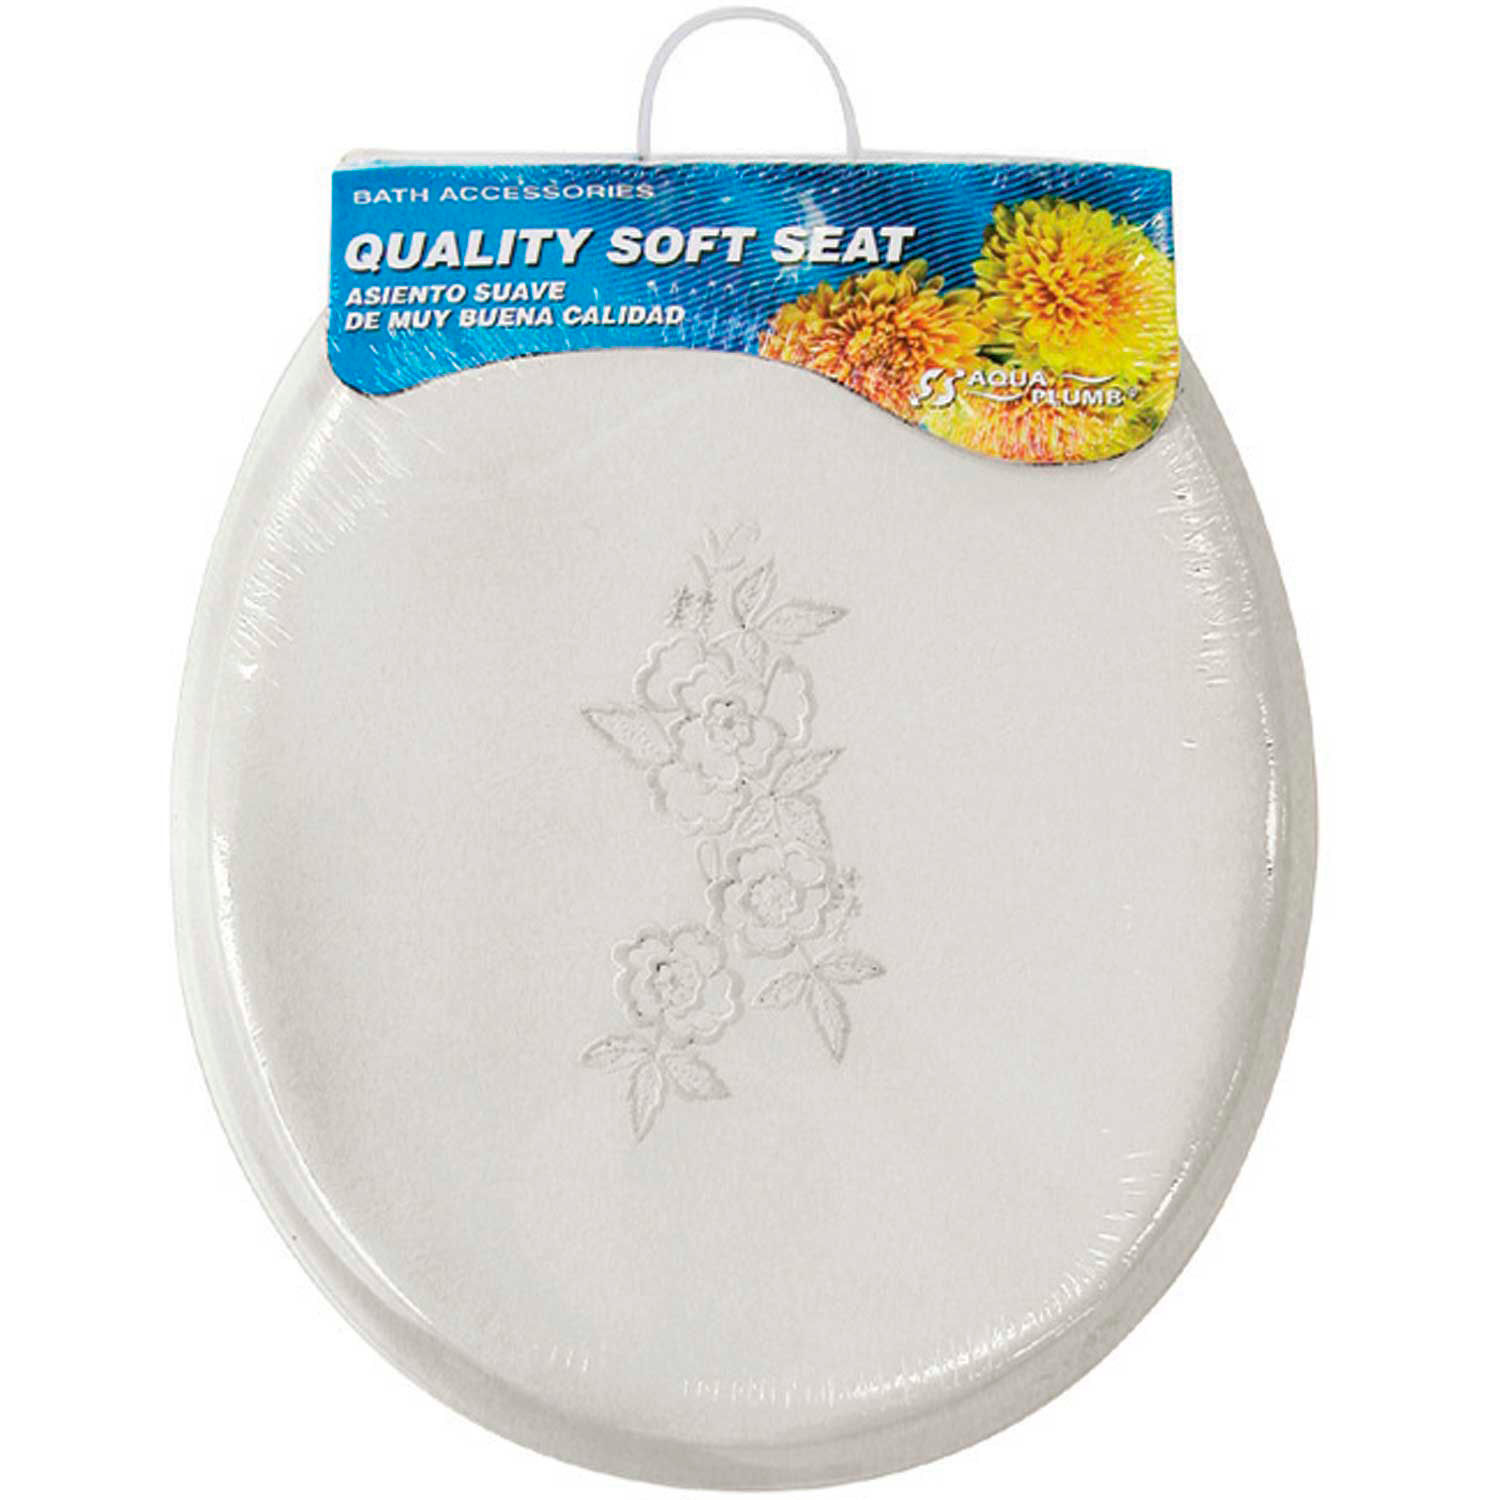 Aqua Plumb CTSEW Round Soft Toilet Seat White Embroidered Butterfly